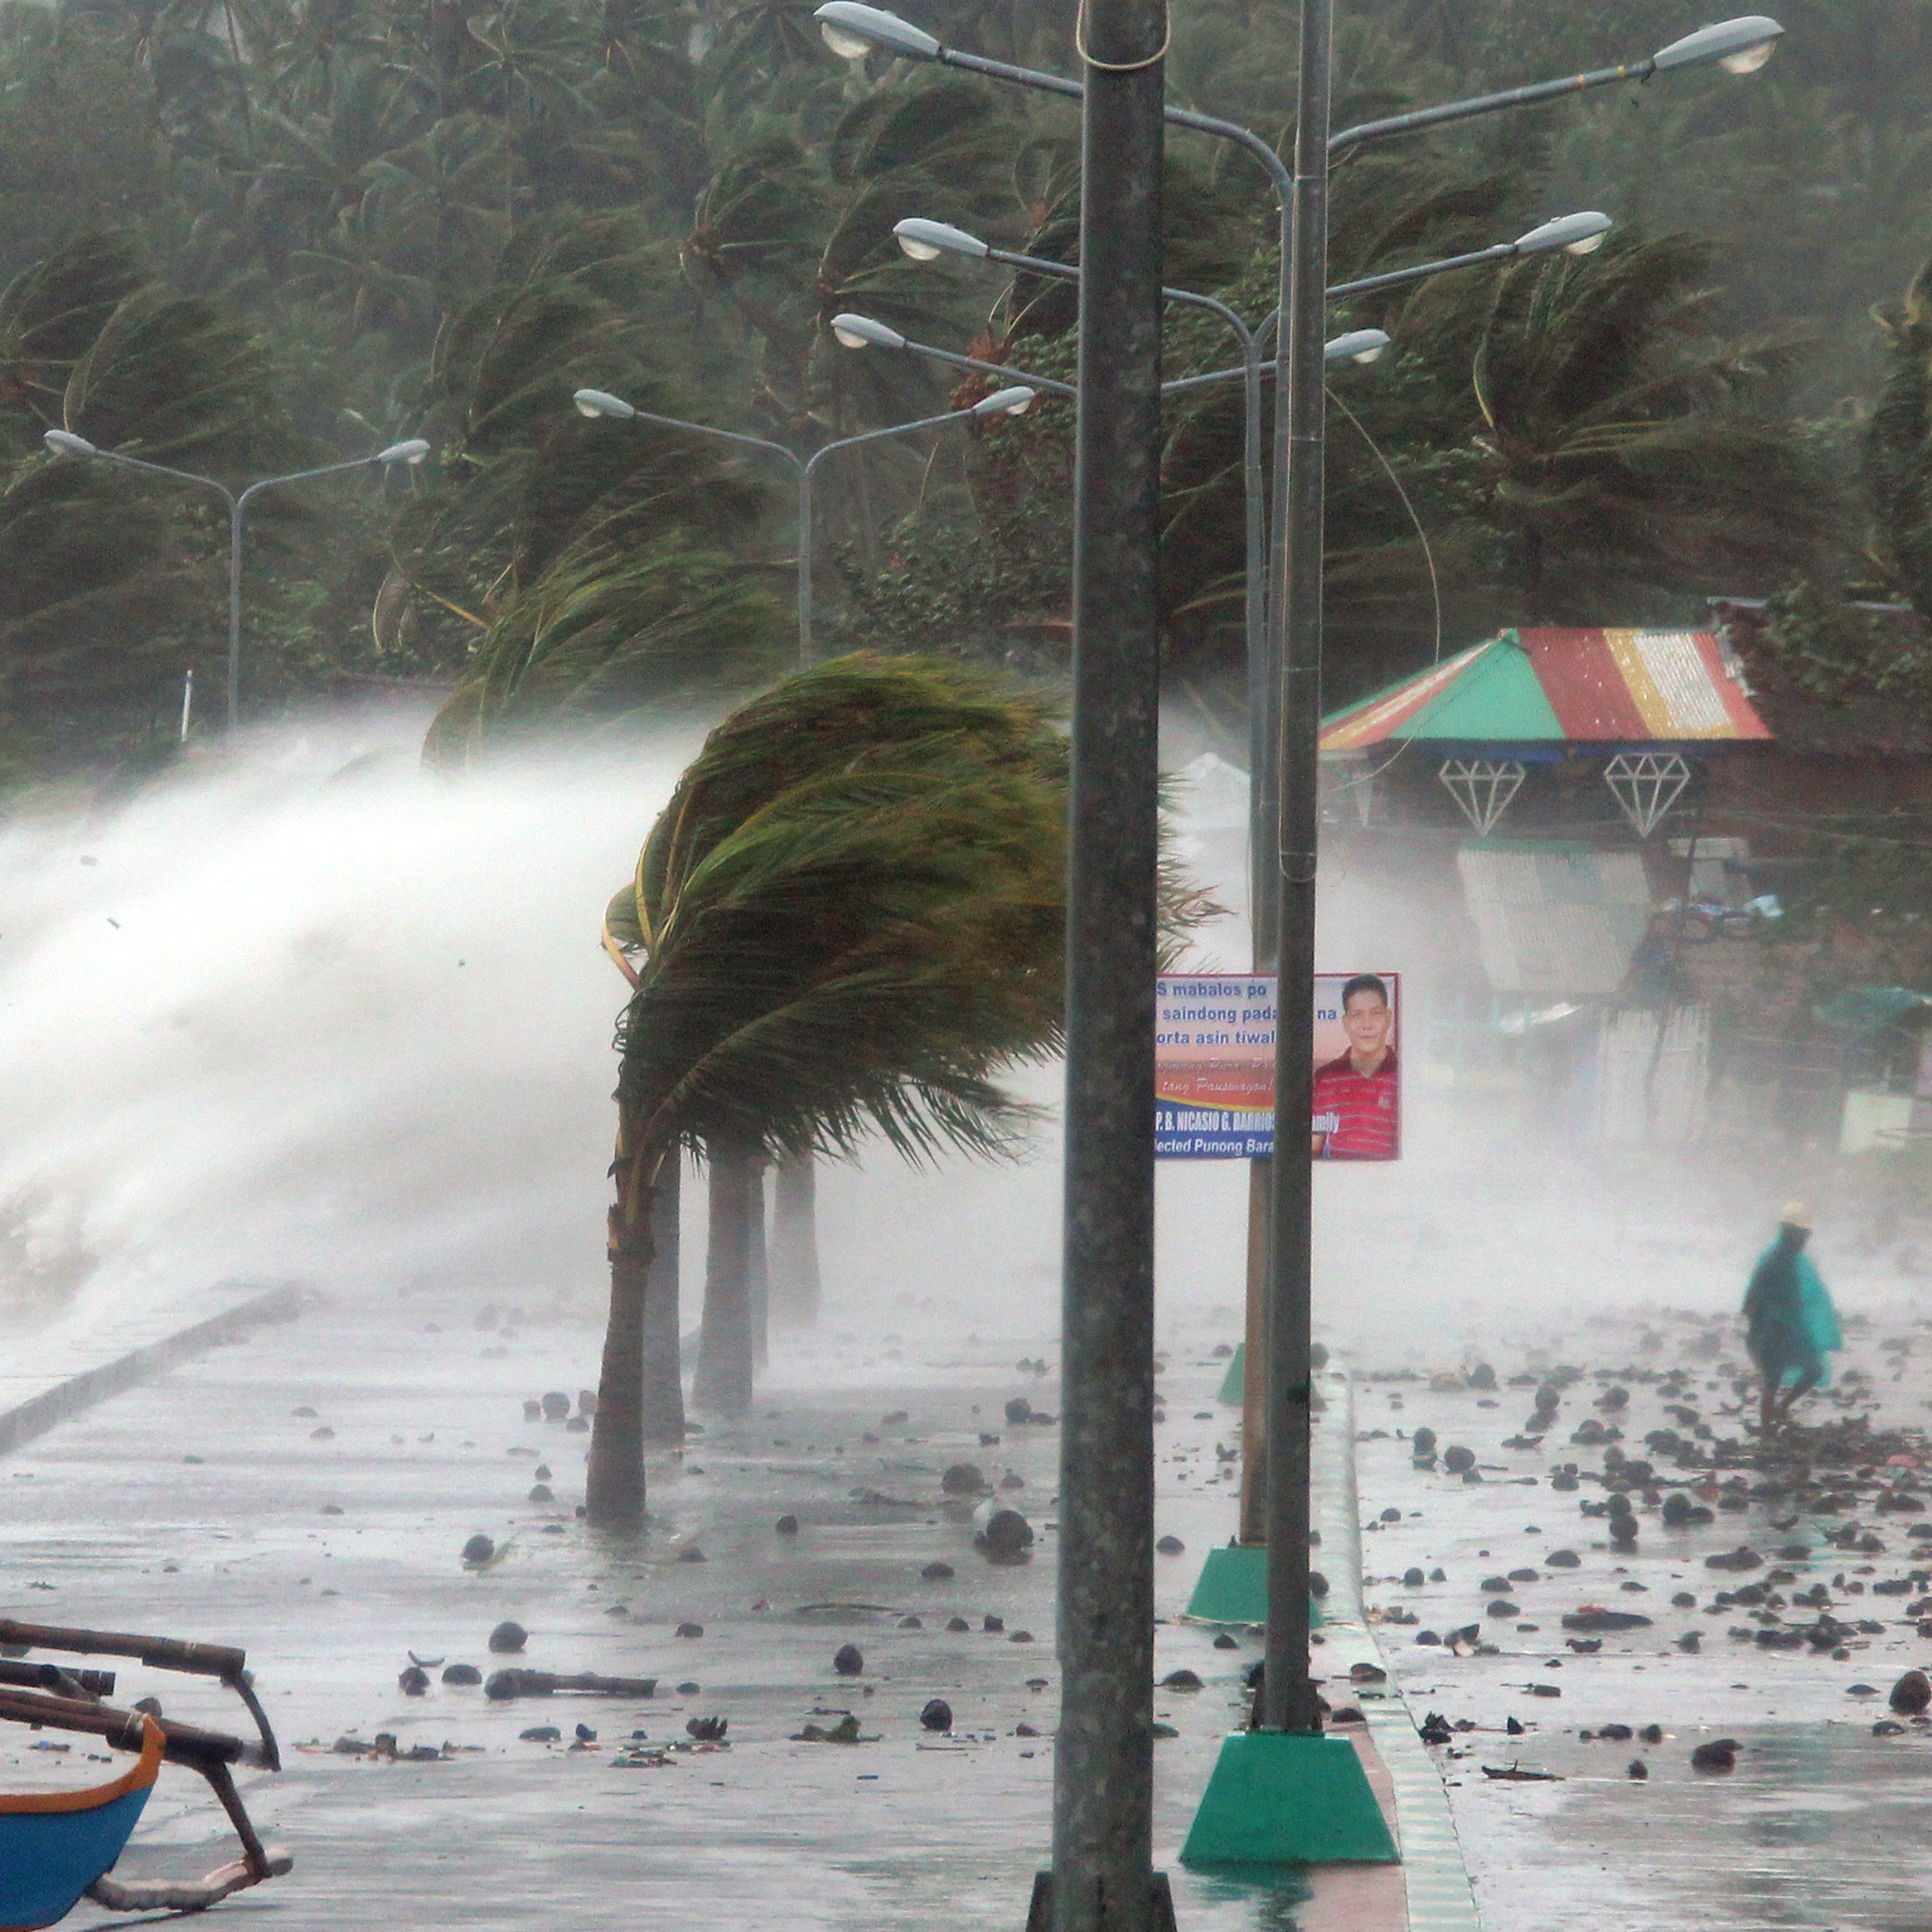 On the ground, Typhoon Haiyan's fury was easy to see. Here's how things looked in the city of Legaspi, Albay province, on Friday.